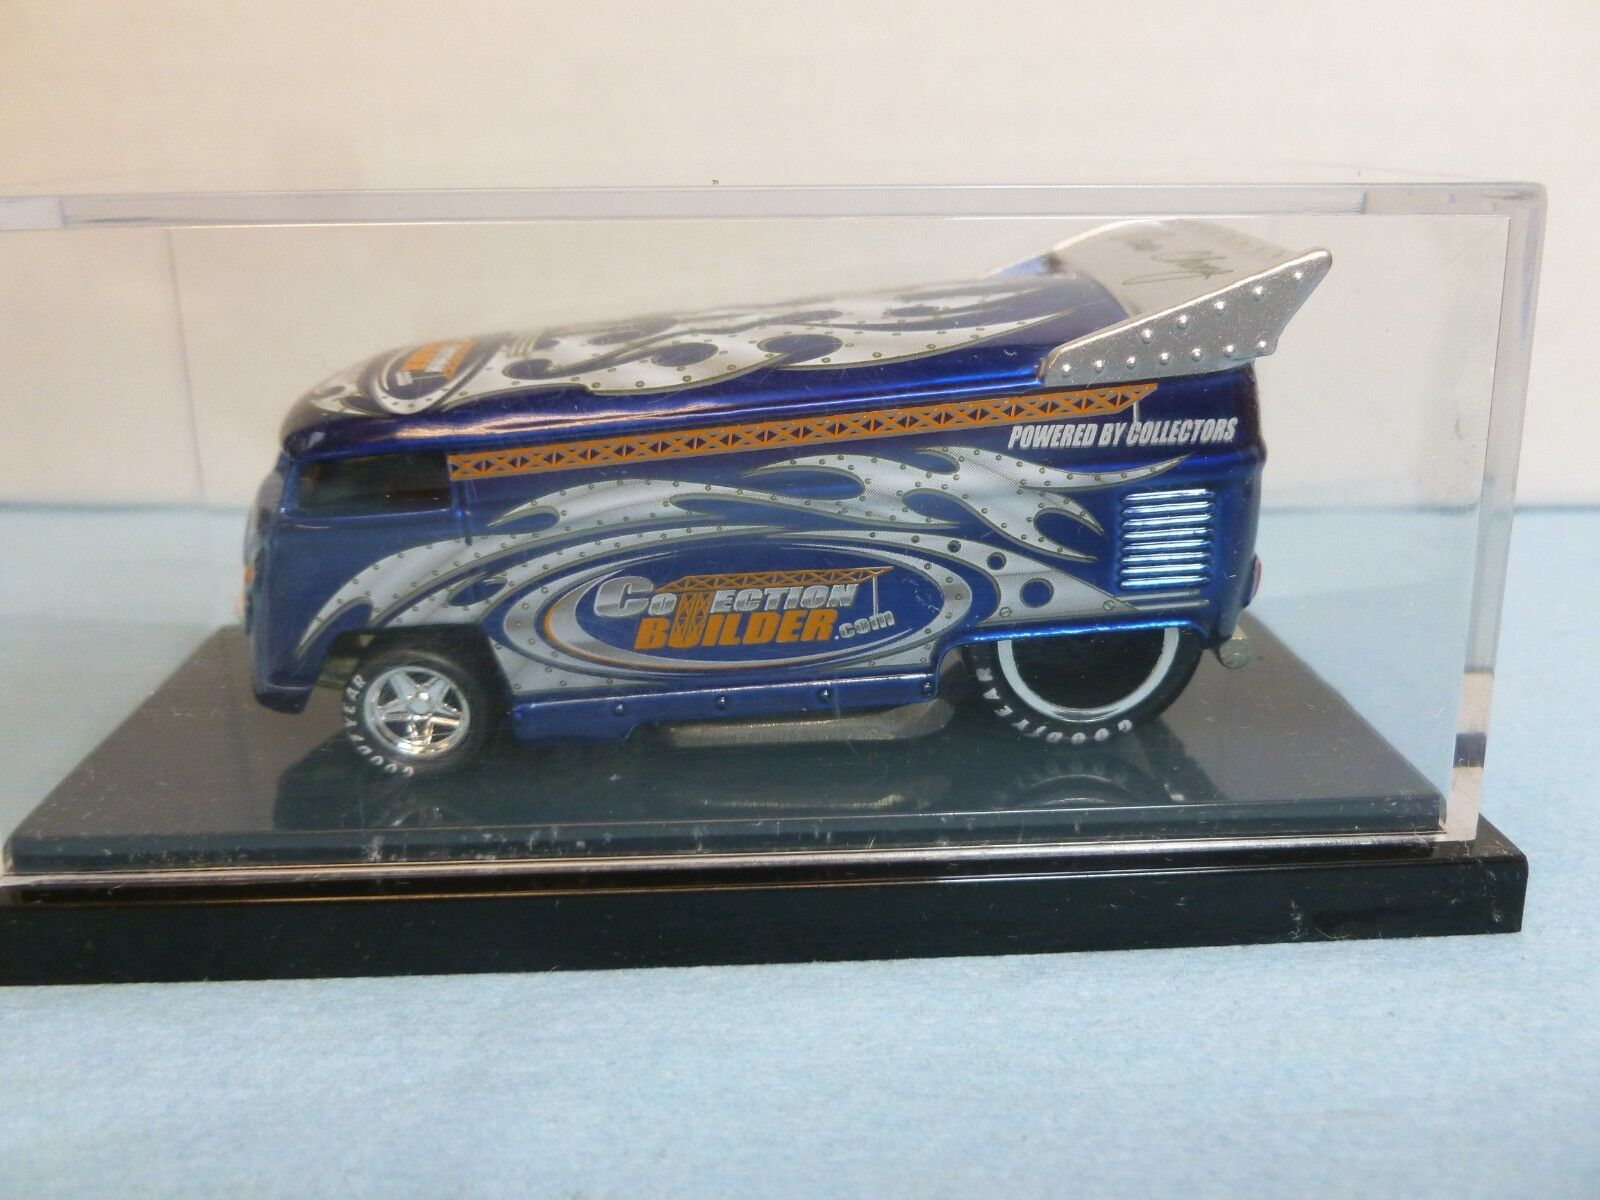 Hot Wheels LIBERTY PROMOTIONS COLLECTOR BUILDER - blu (VW DRAG BUS)